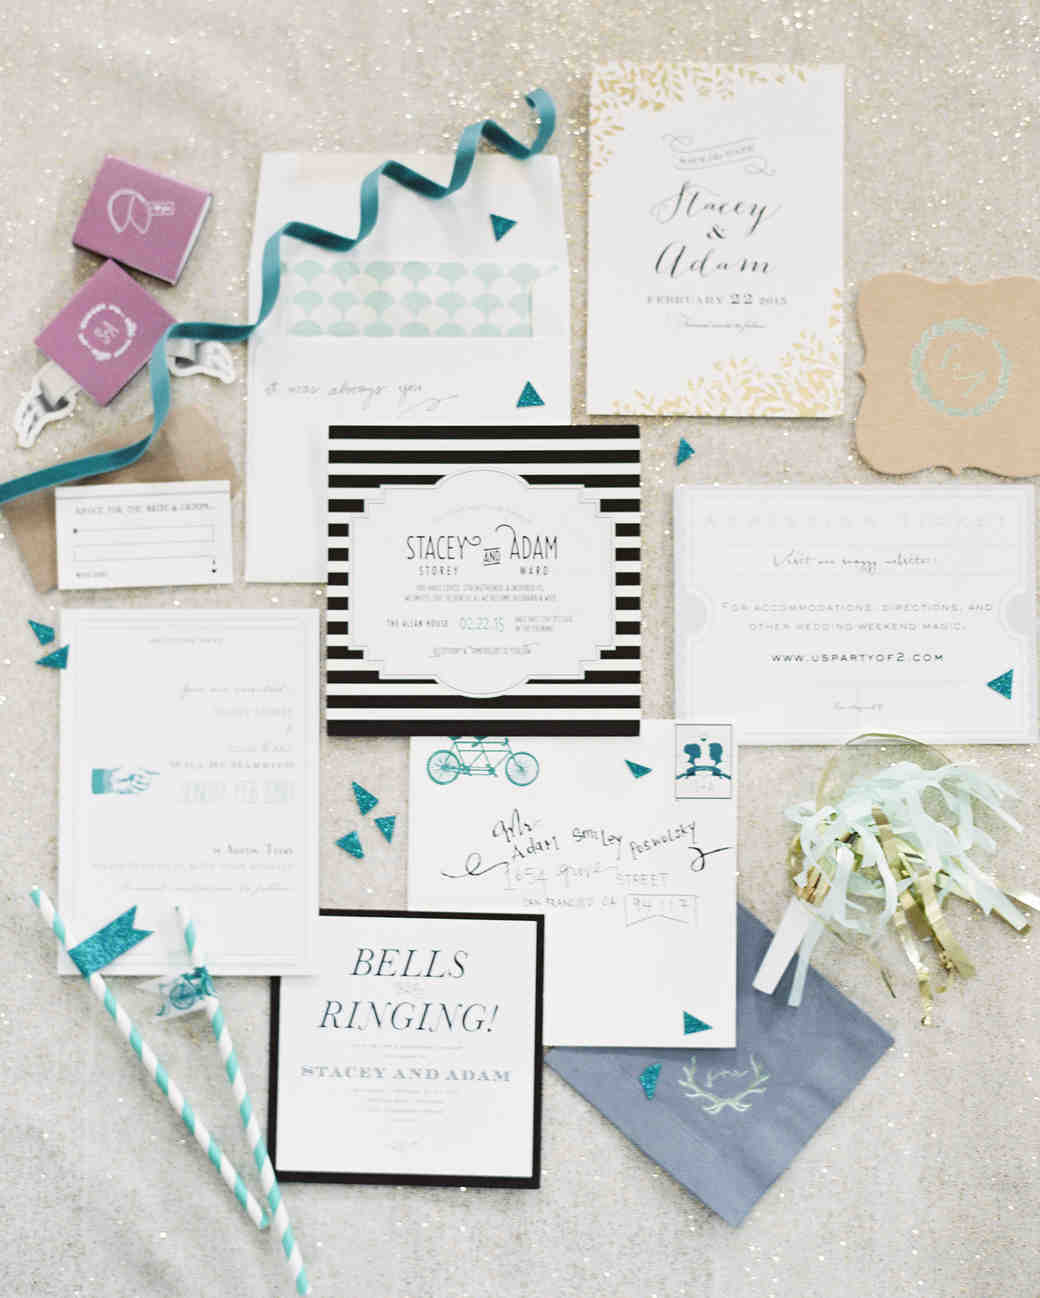 stacey-adam-wedding-stationery-0005-s112112-0815.jpg